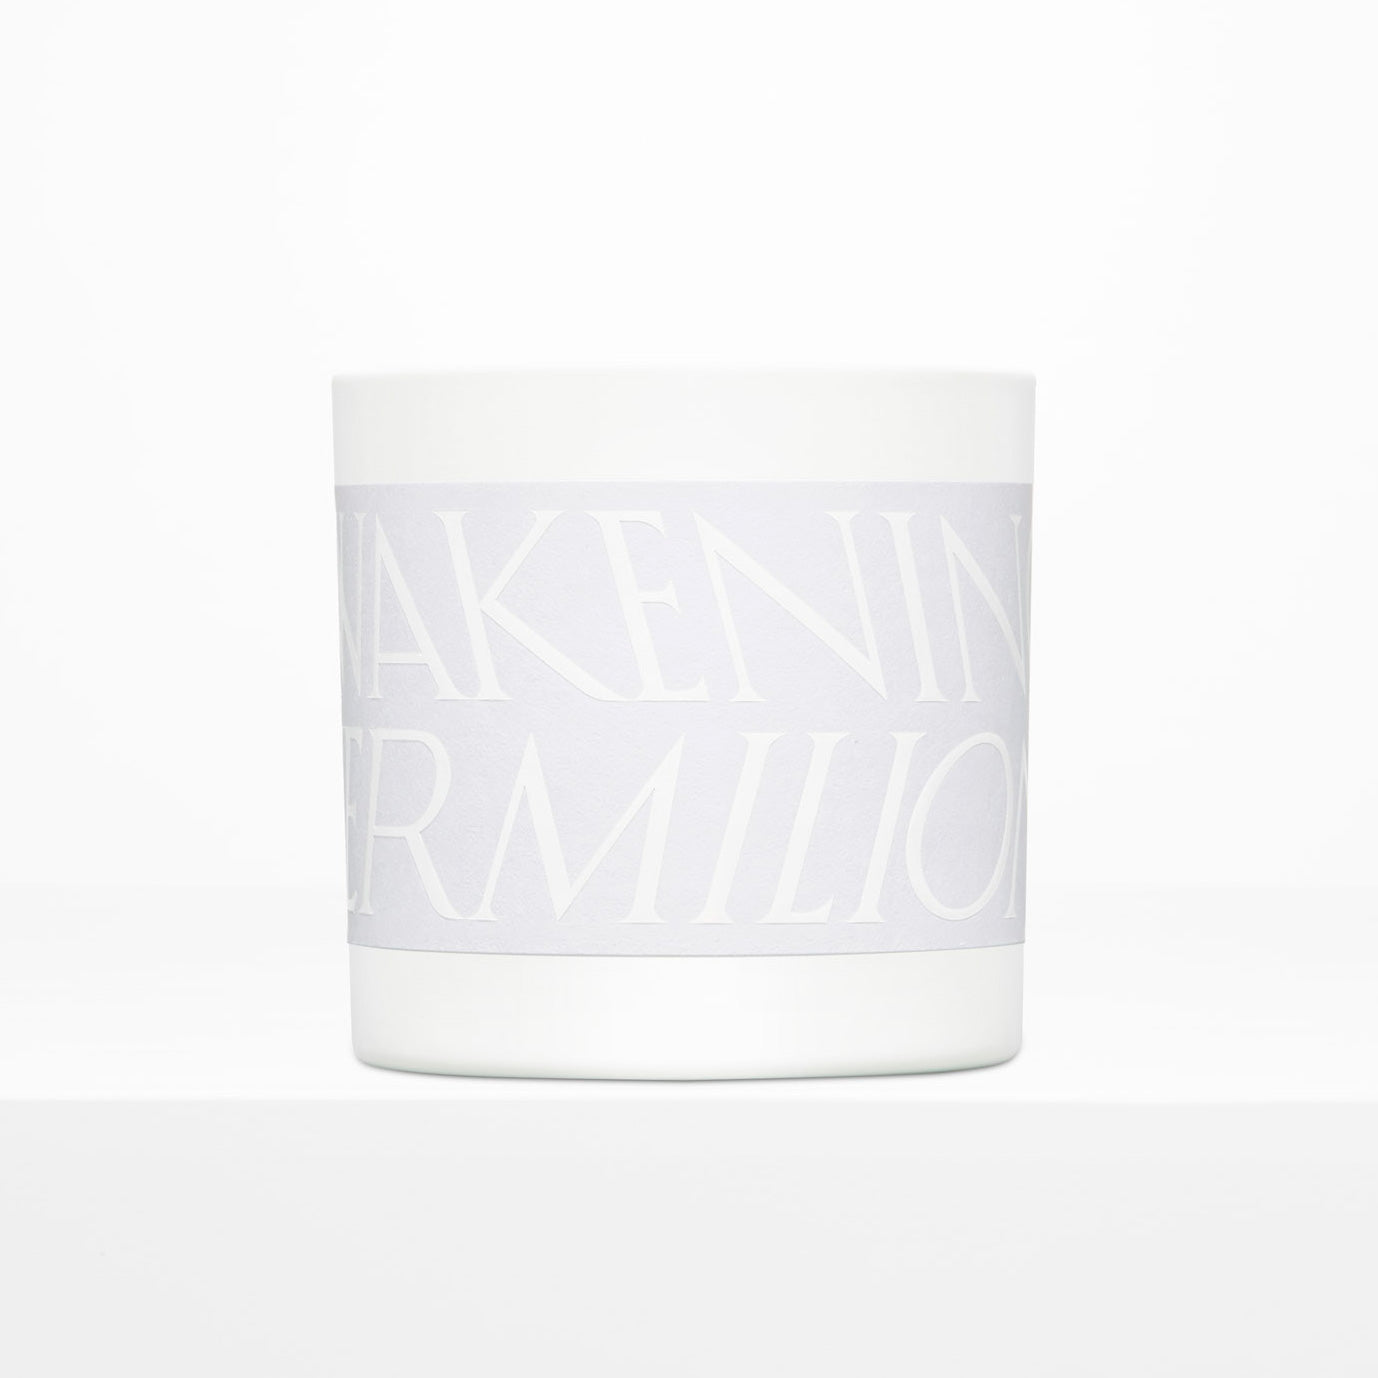 AWAKENING VERMILION SCENTED CANDLE